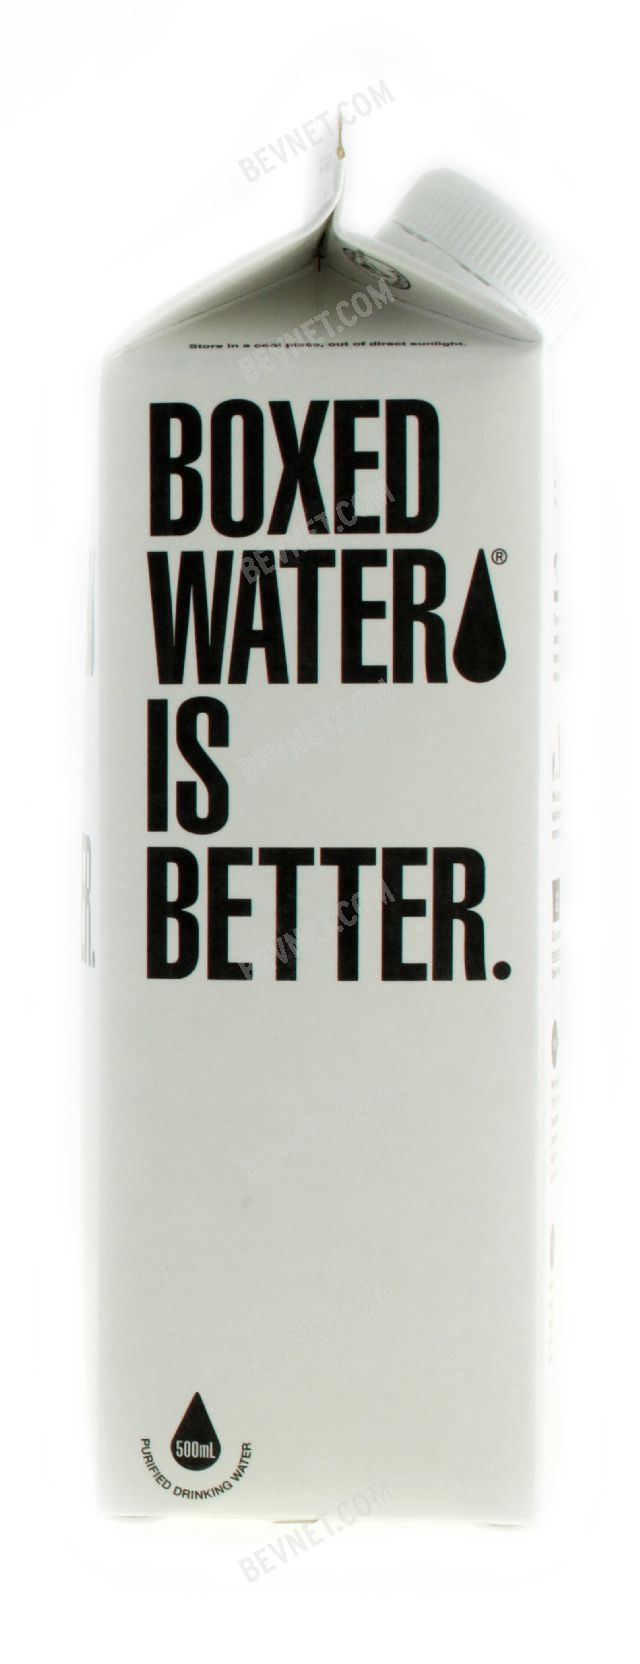 Boxed Water is Better: